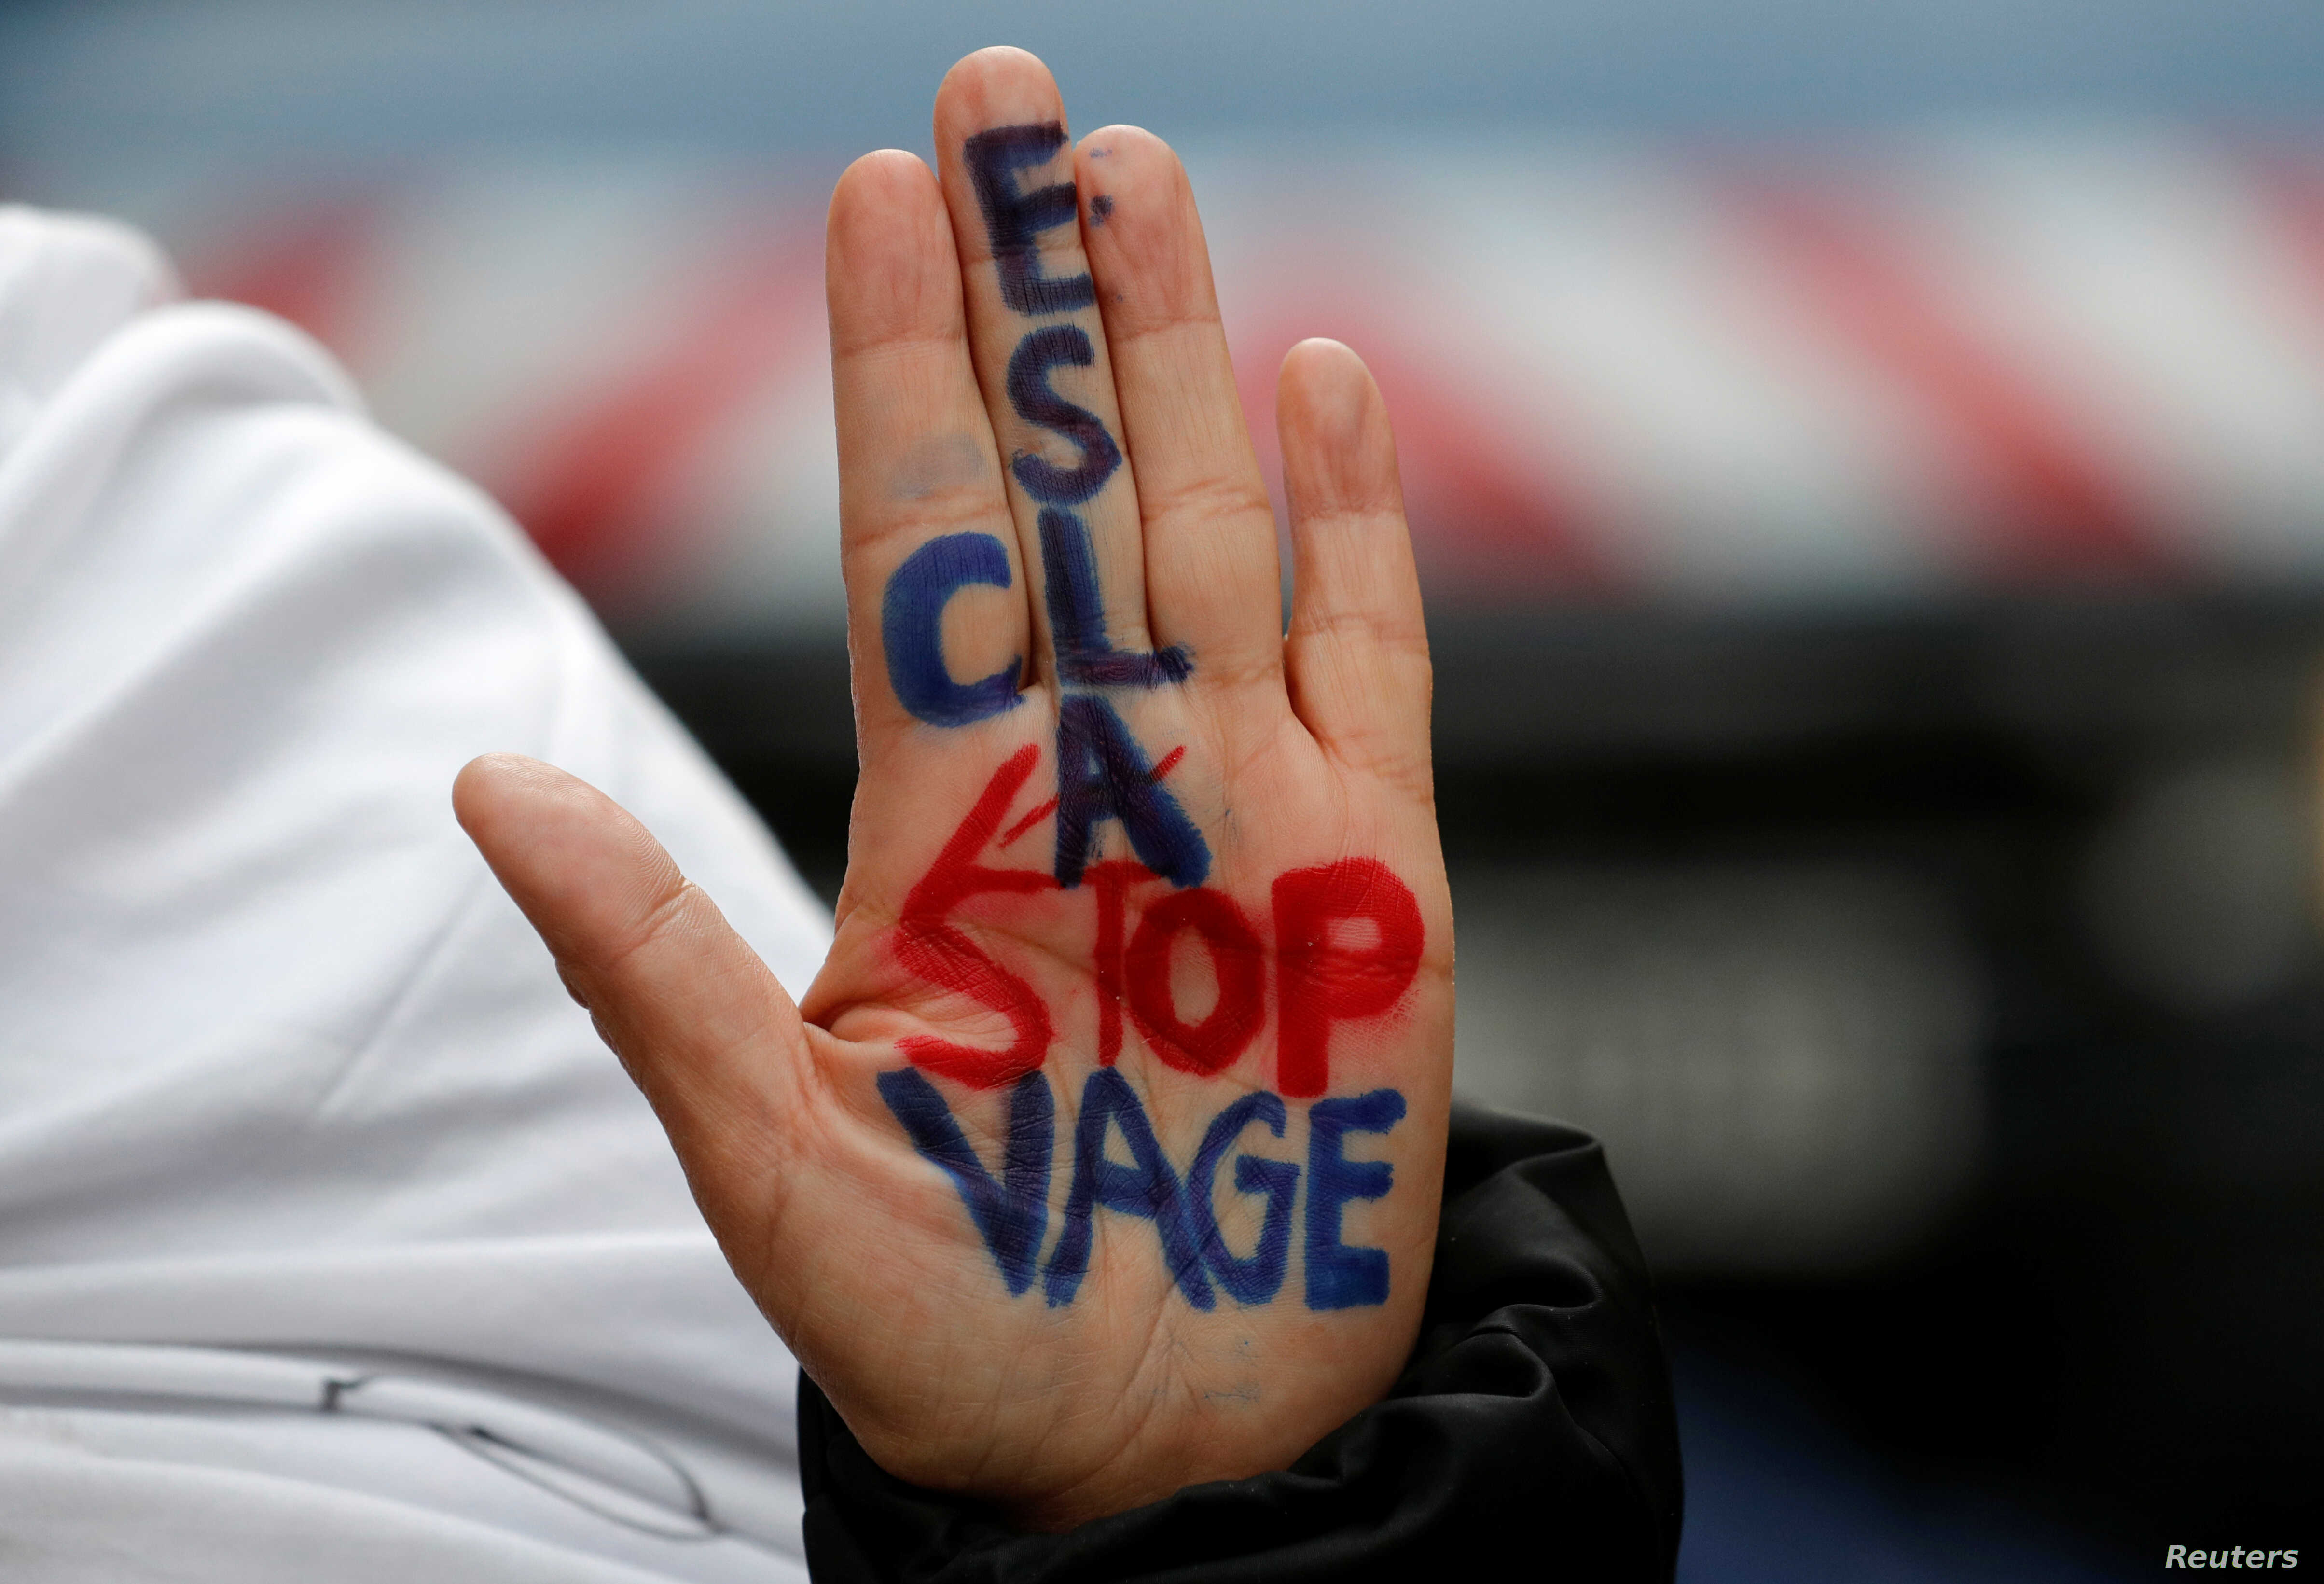 """A woman displays her hand with the message """"Stop slavery"""" as she attends a protest against slavery in Libya outside the Libyan Embassy in Paris, France, Nov. 24, 2017."""